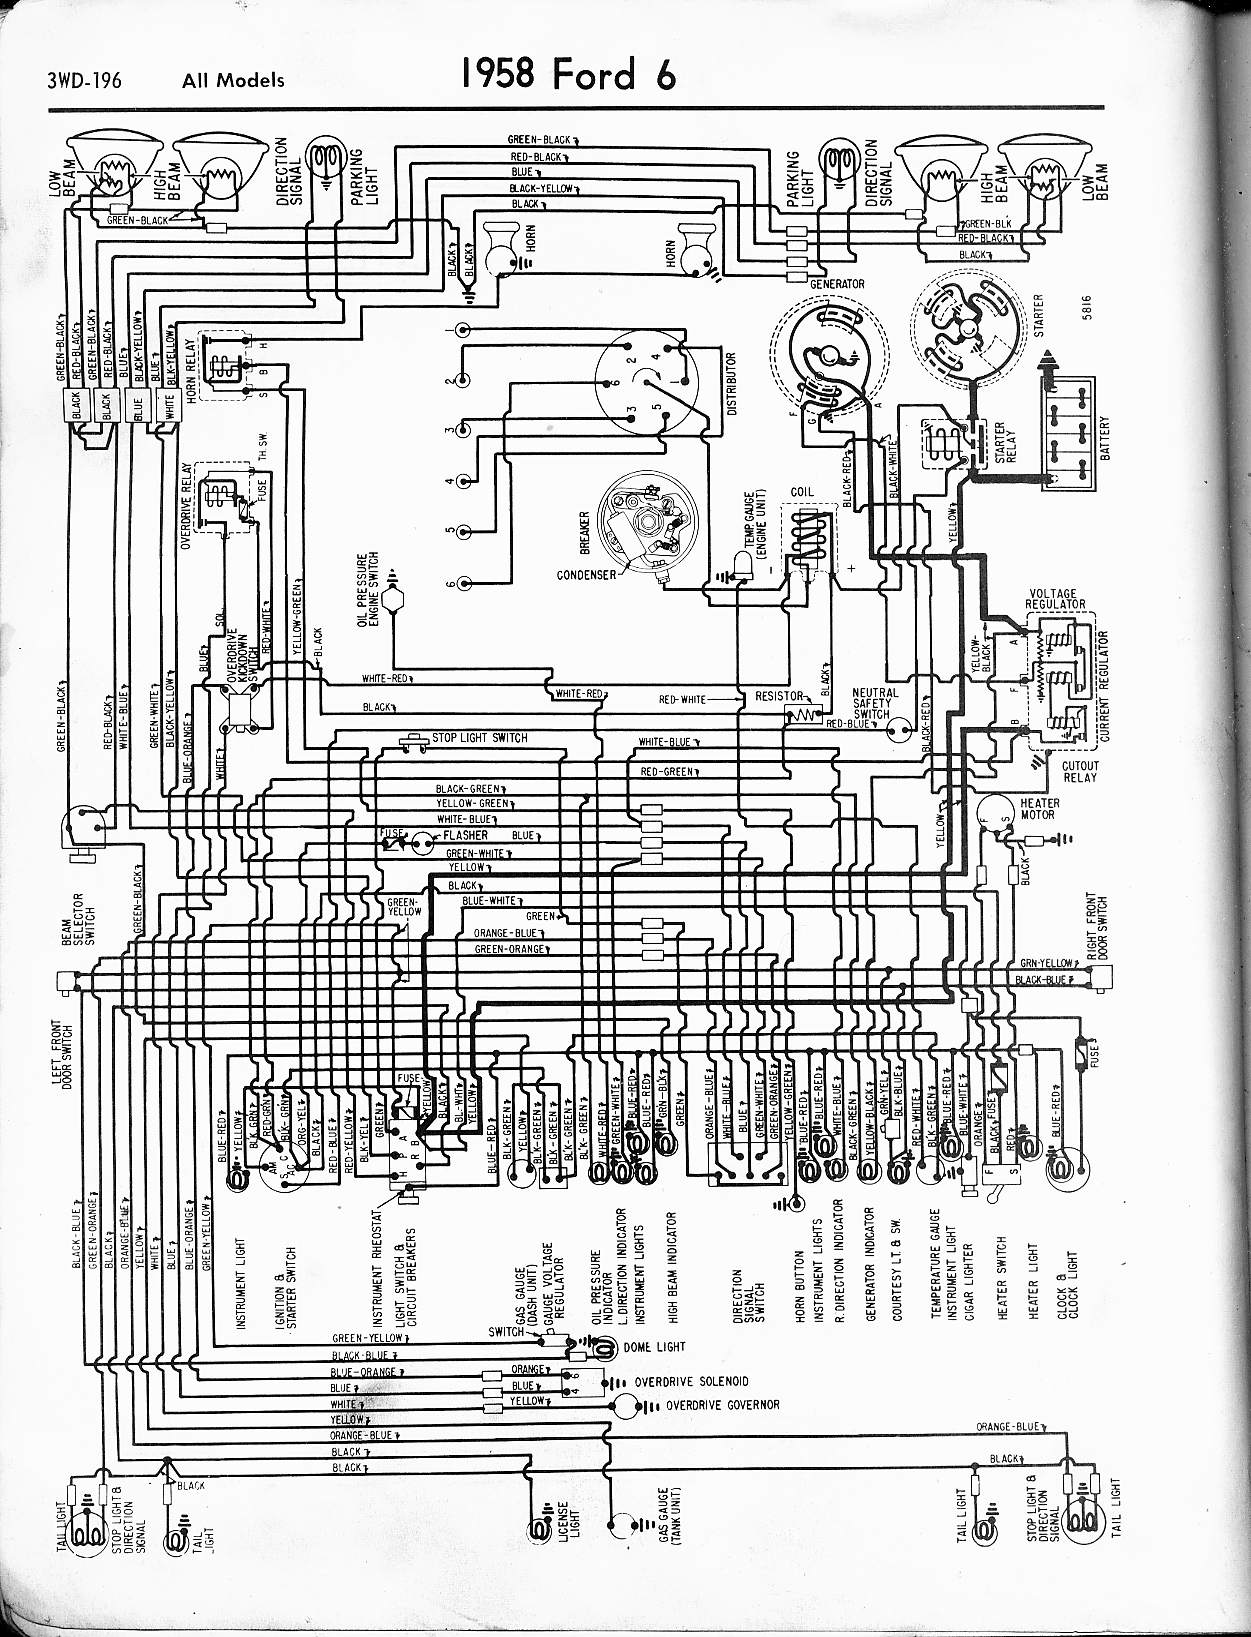 MWire5765 196 57 65 ford wiring diagrams  at bayanpartner.co